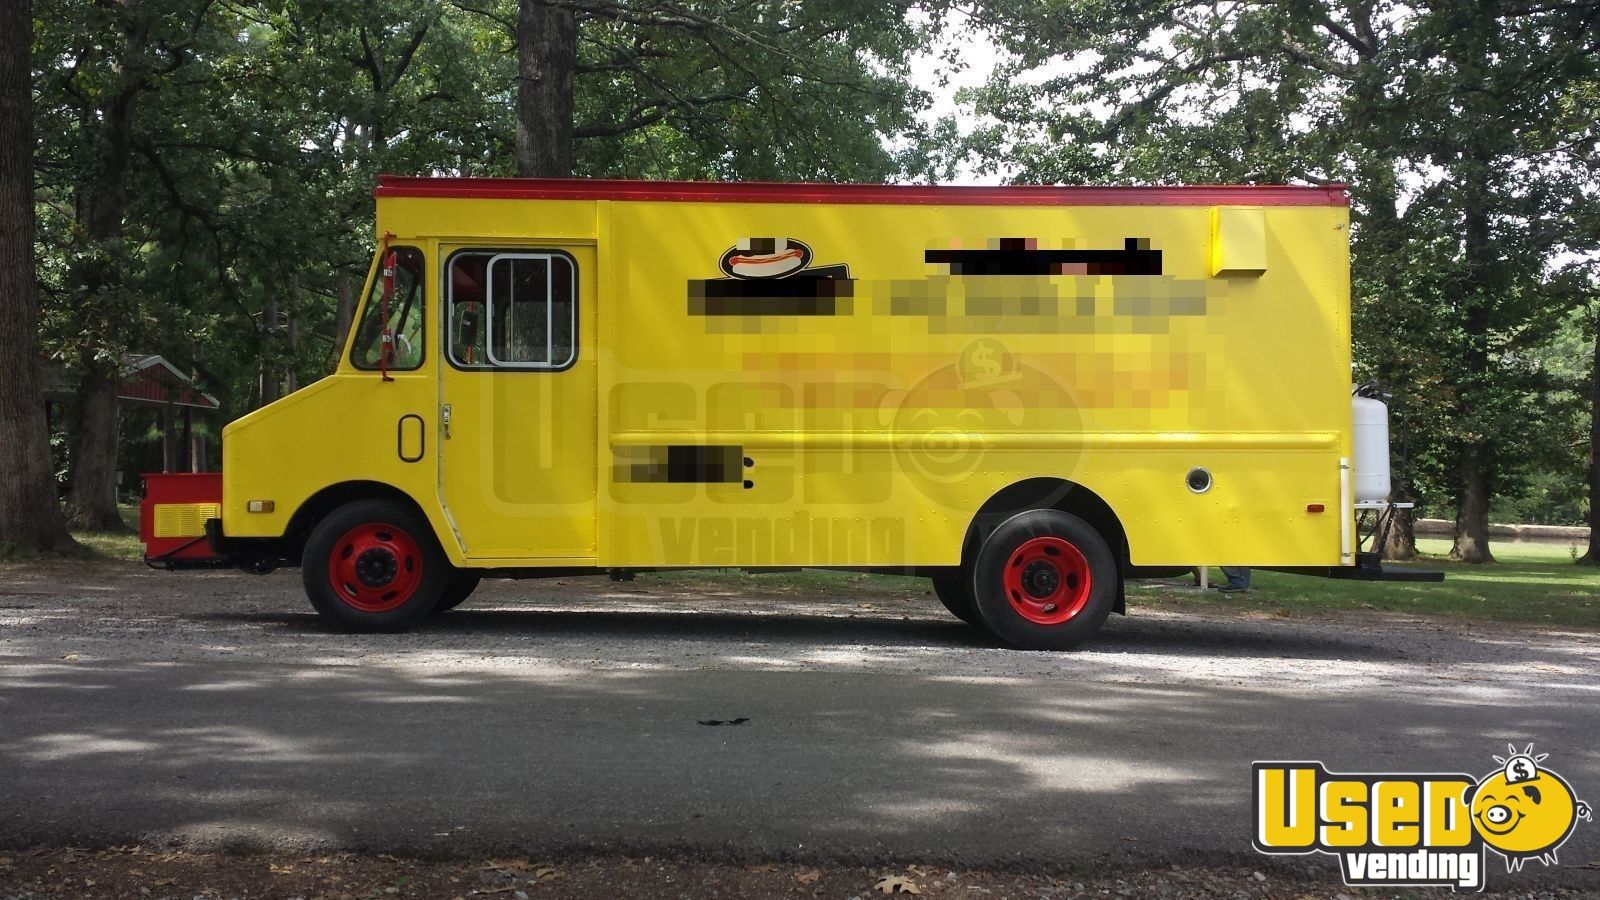 1986 Chevy P30 All-purpose Food Truck Air Conditioning Illinois Gas Engine for Sale - 2